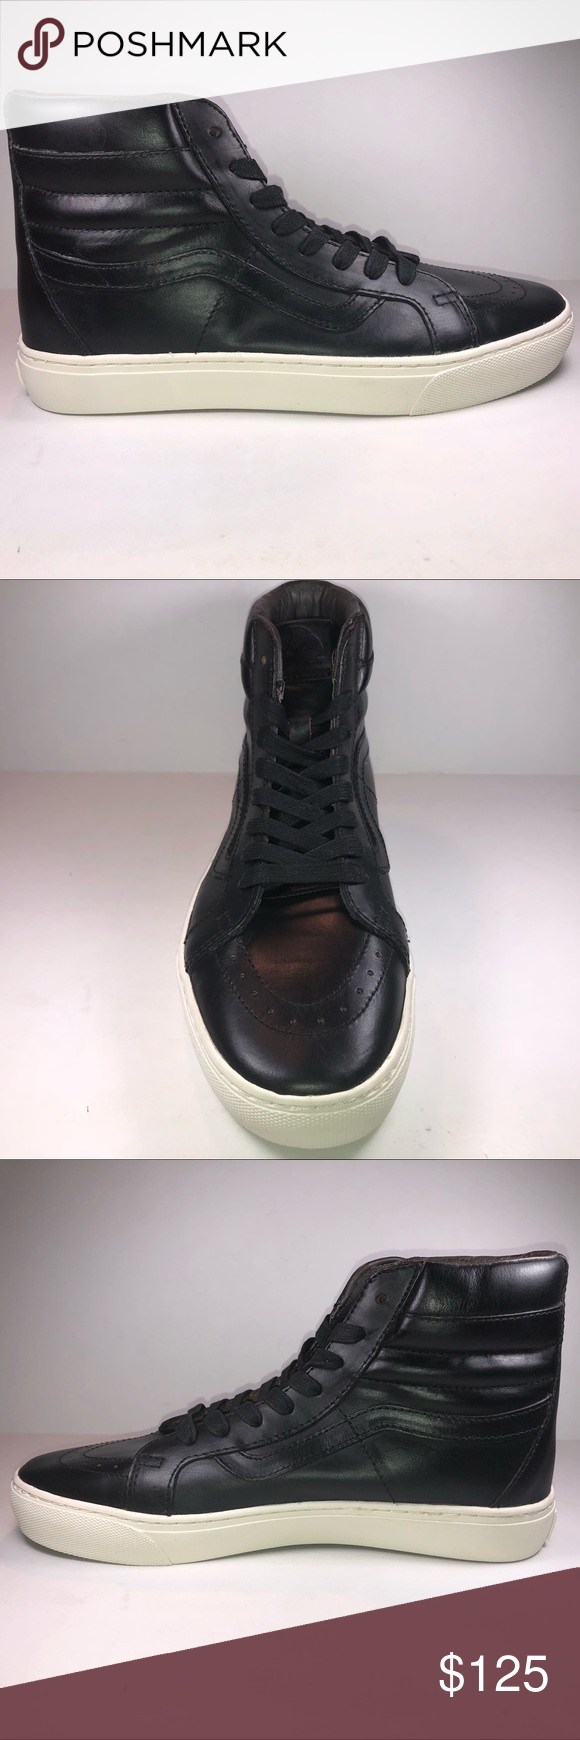 7674b0d979f097 Spotted while shopping on Poshmark  Vans SK8 Hi Cup LX Horween Leather Black  Sneakers!  poshmark  fashion  shopping  style  Vans  Other